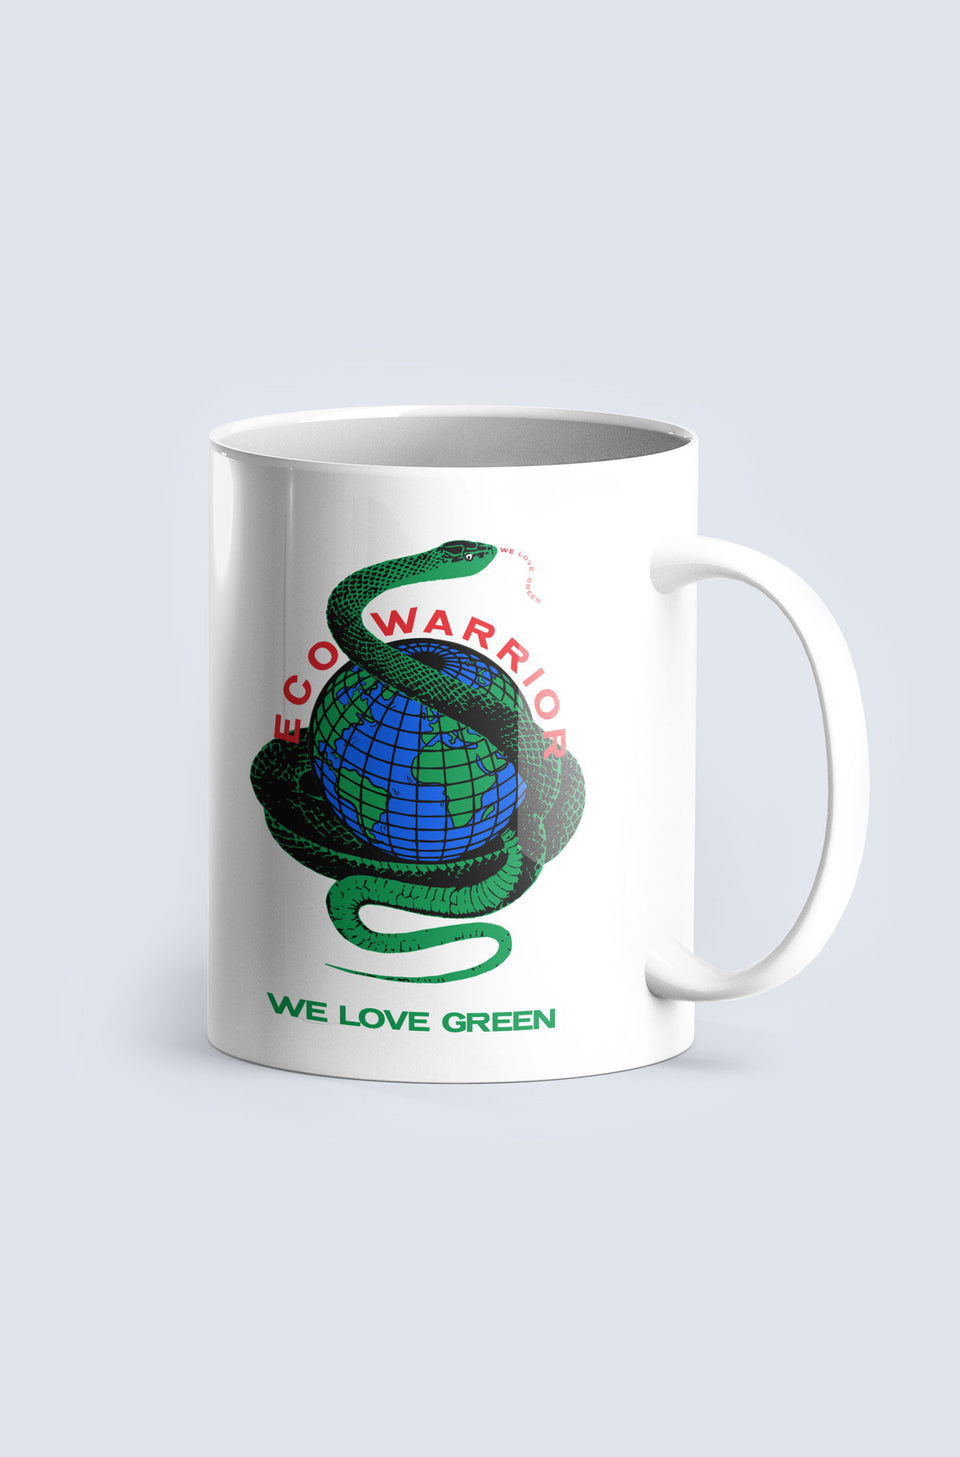 We Love Green Mug